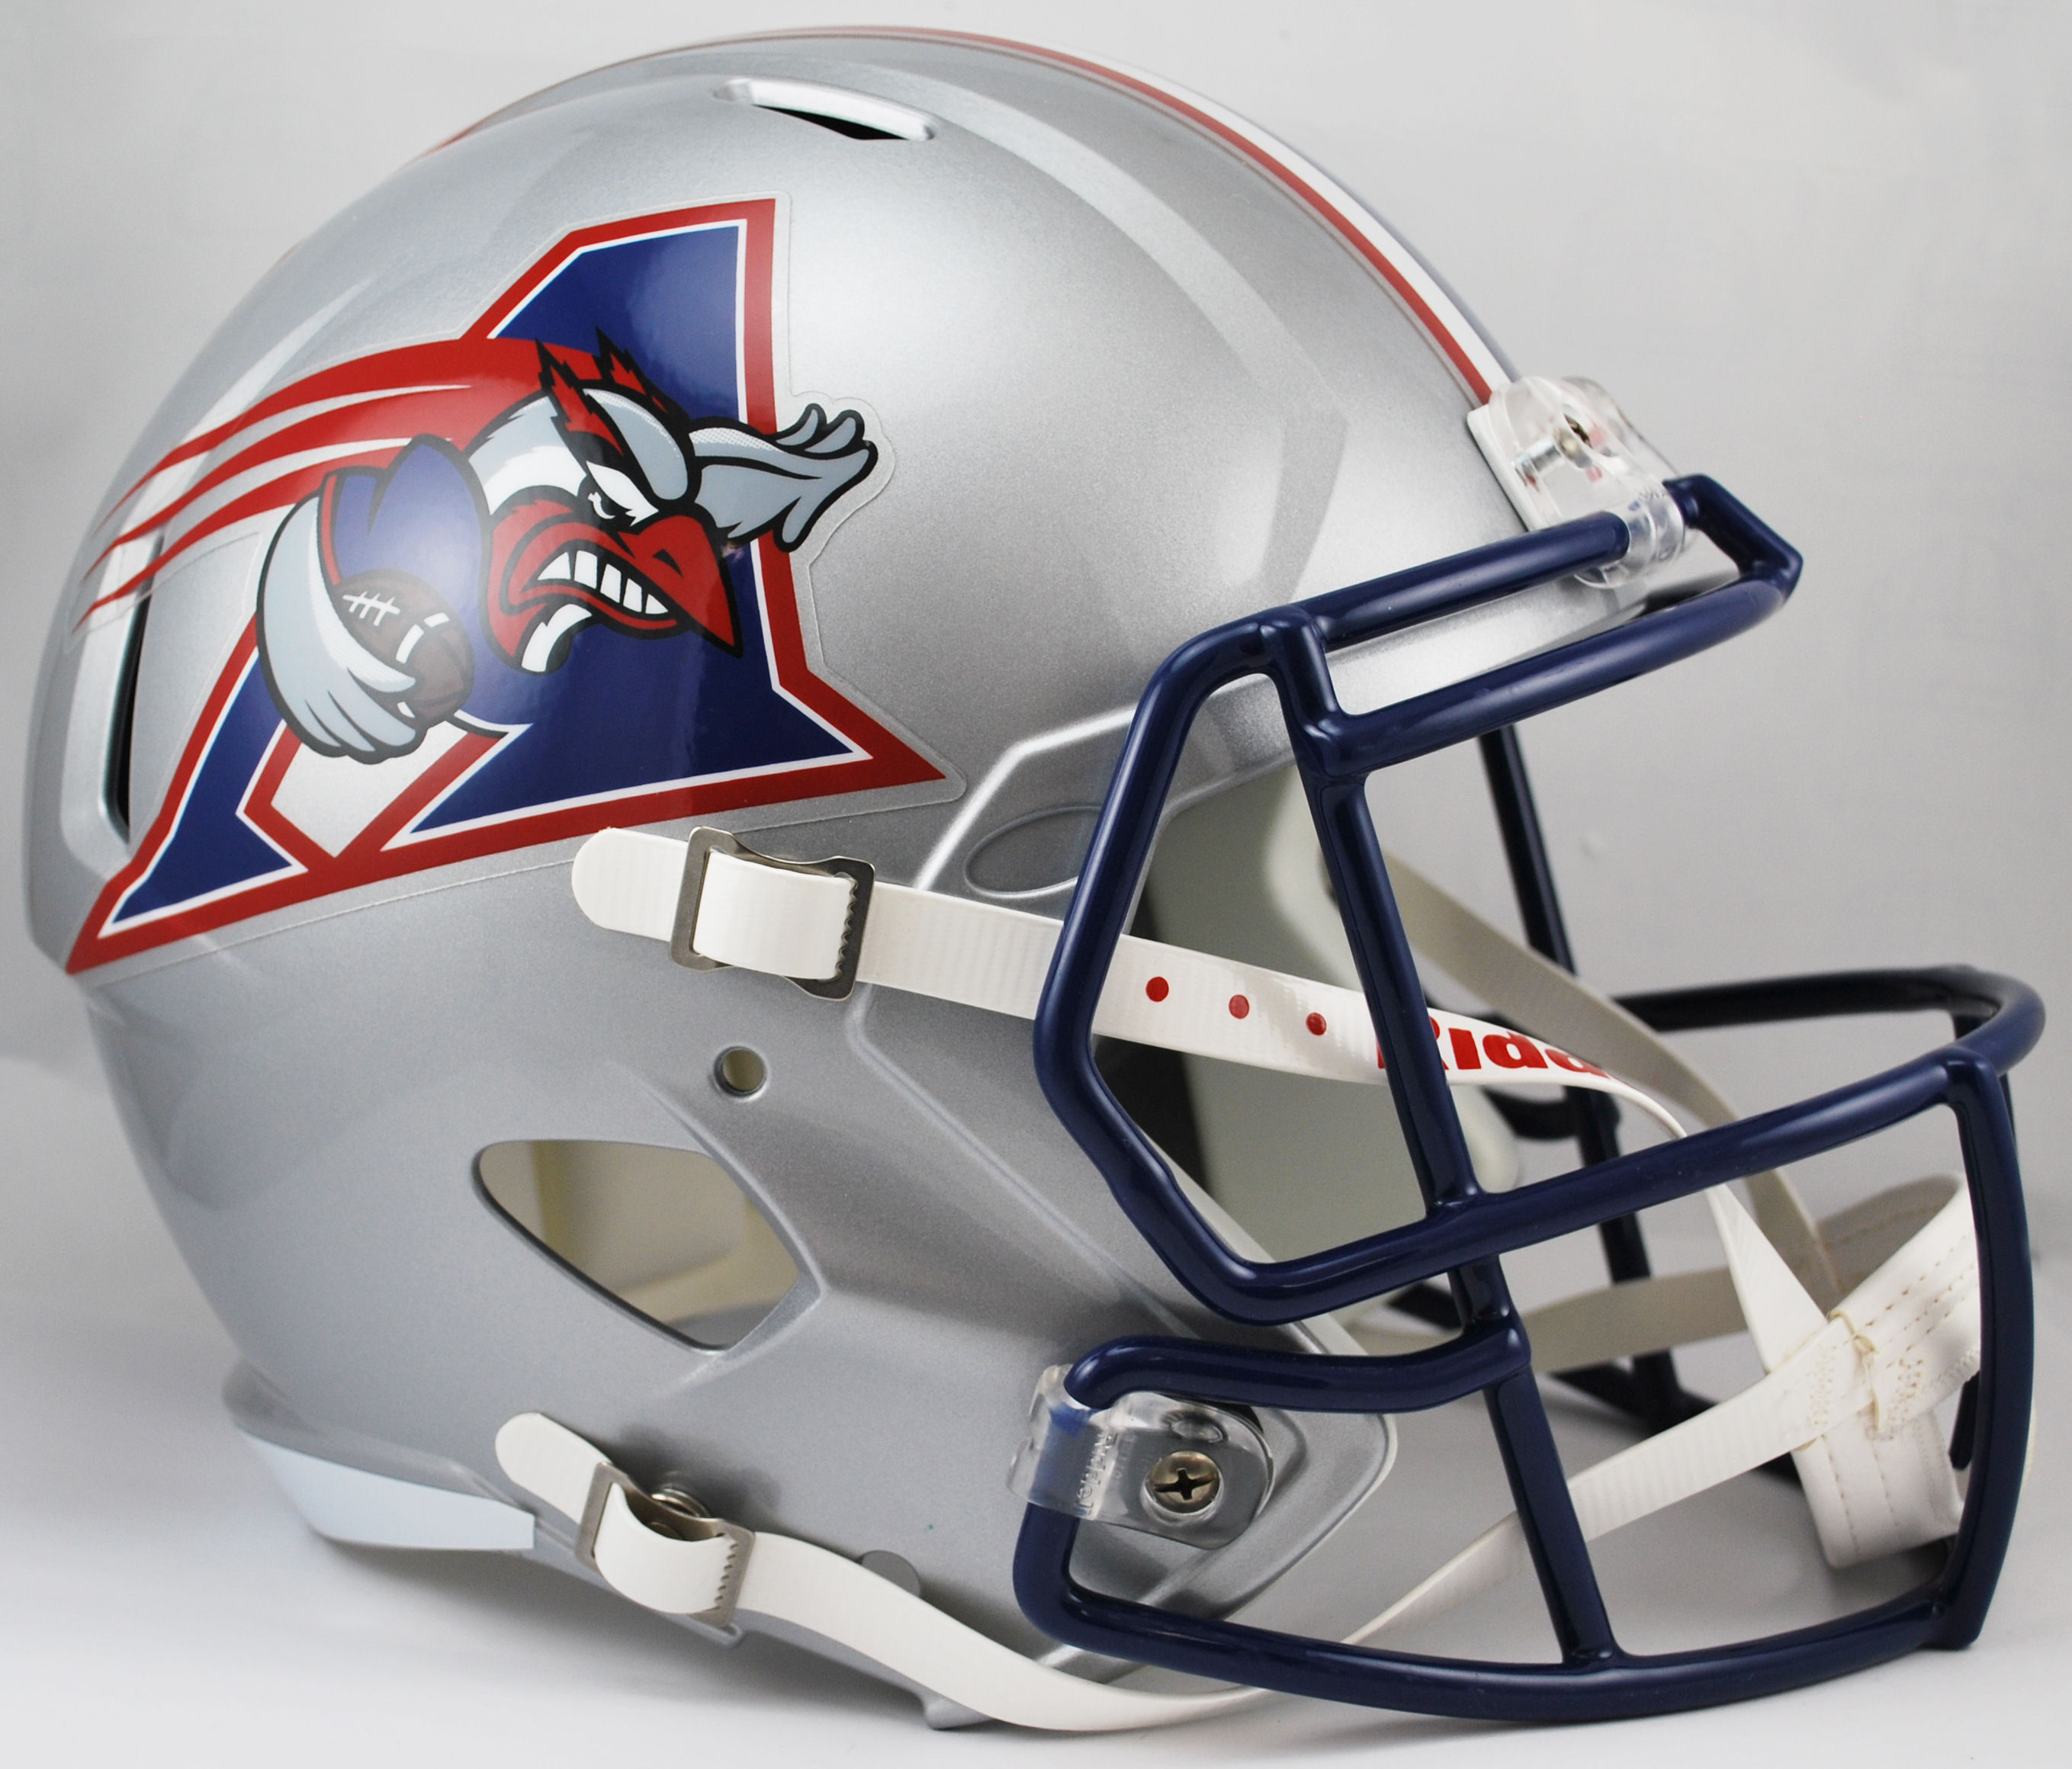 Montreal Alouettes CFL Speed Replica Football Helmet